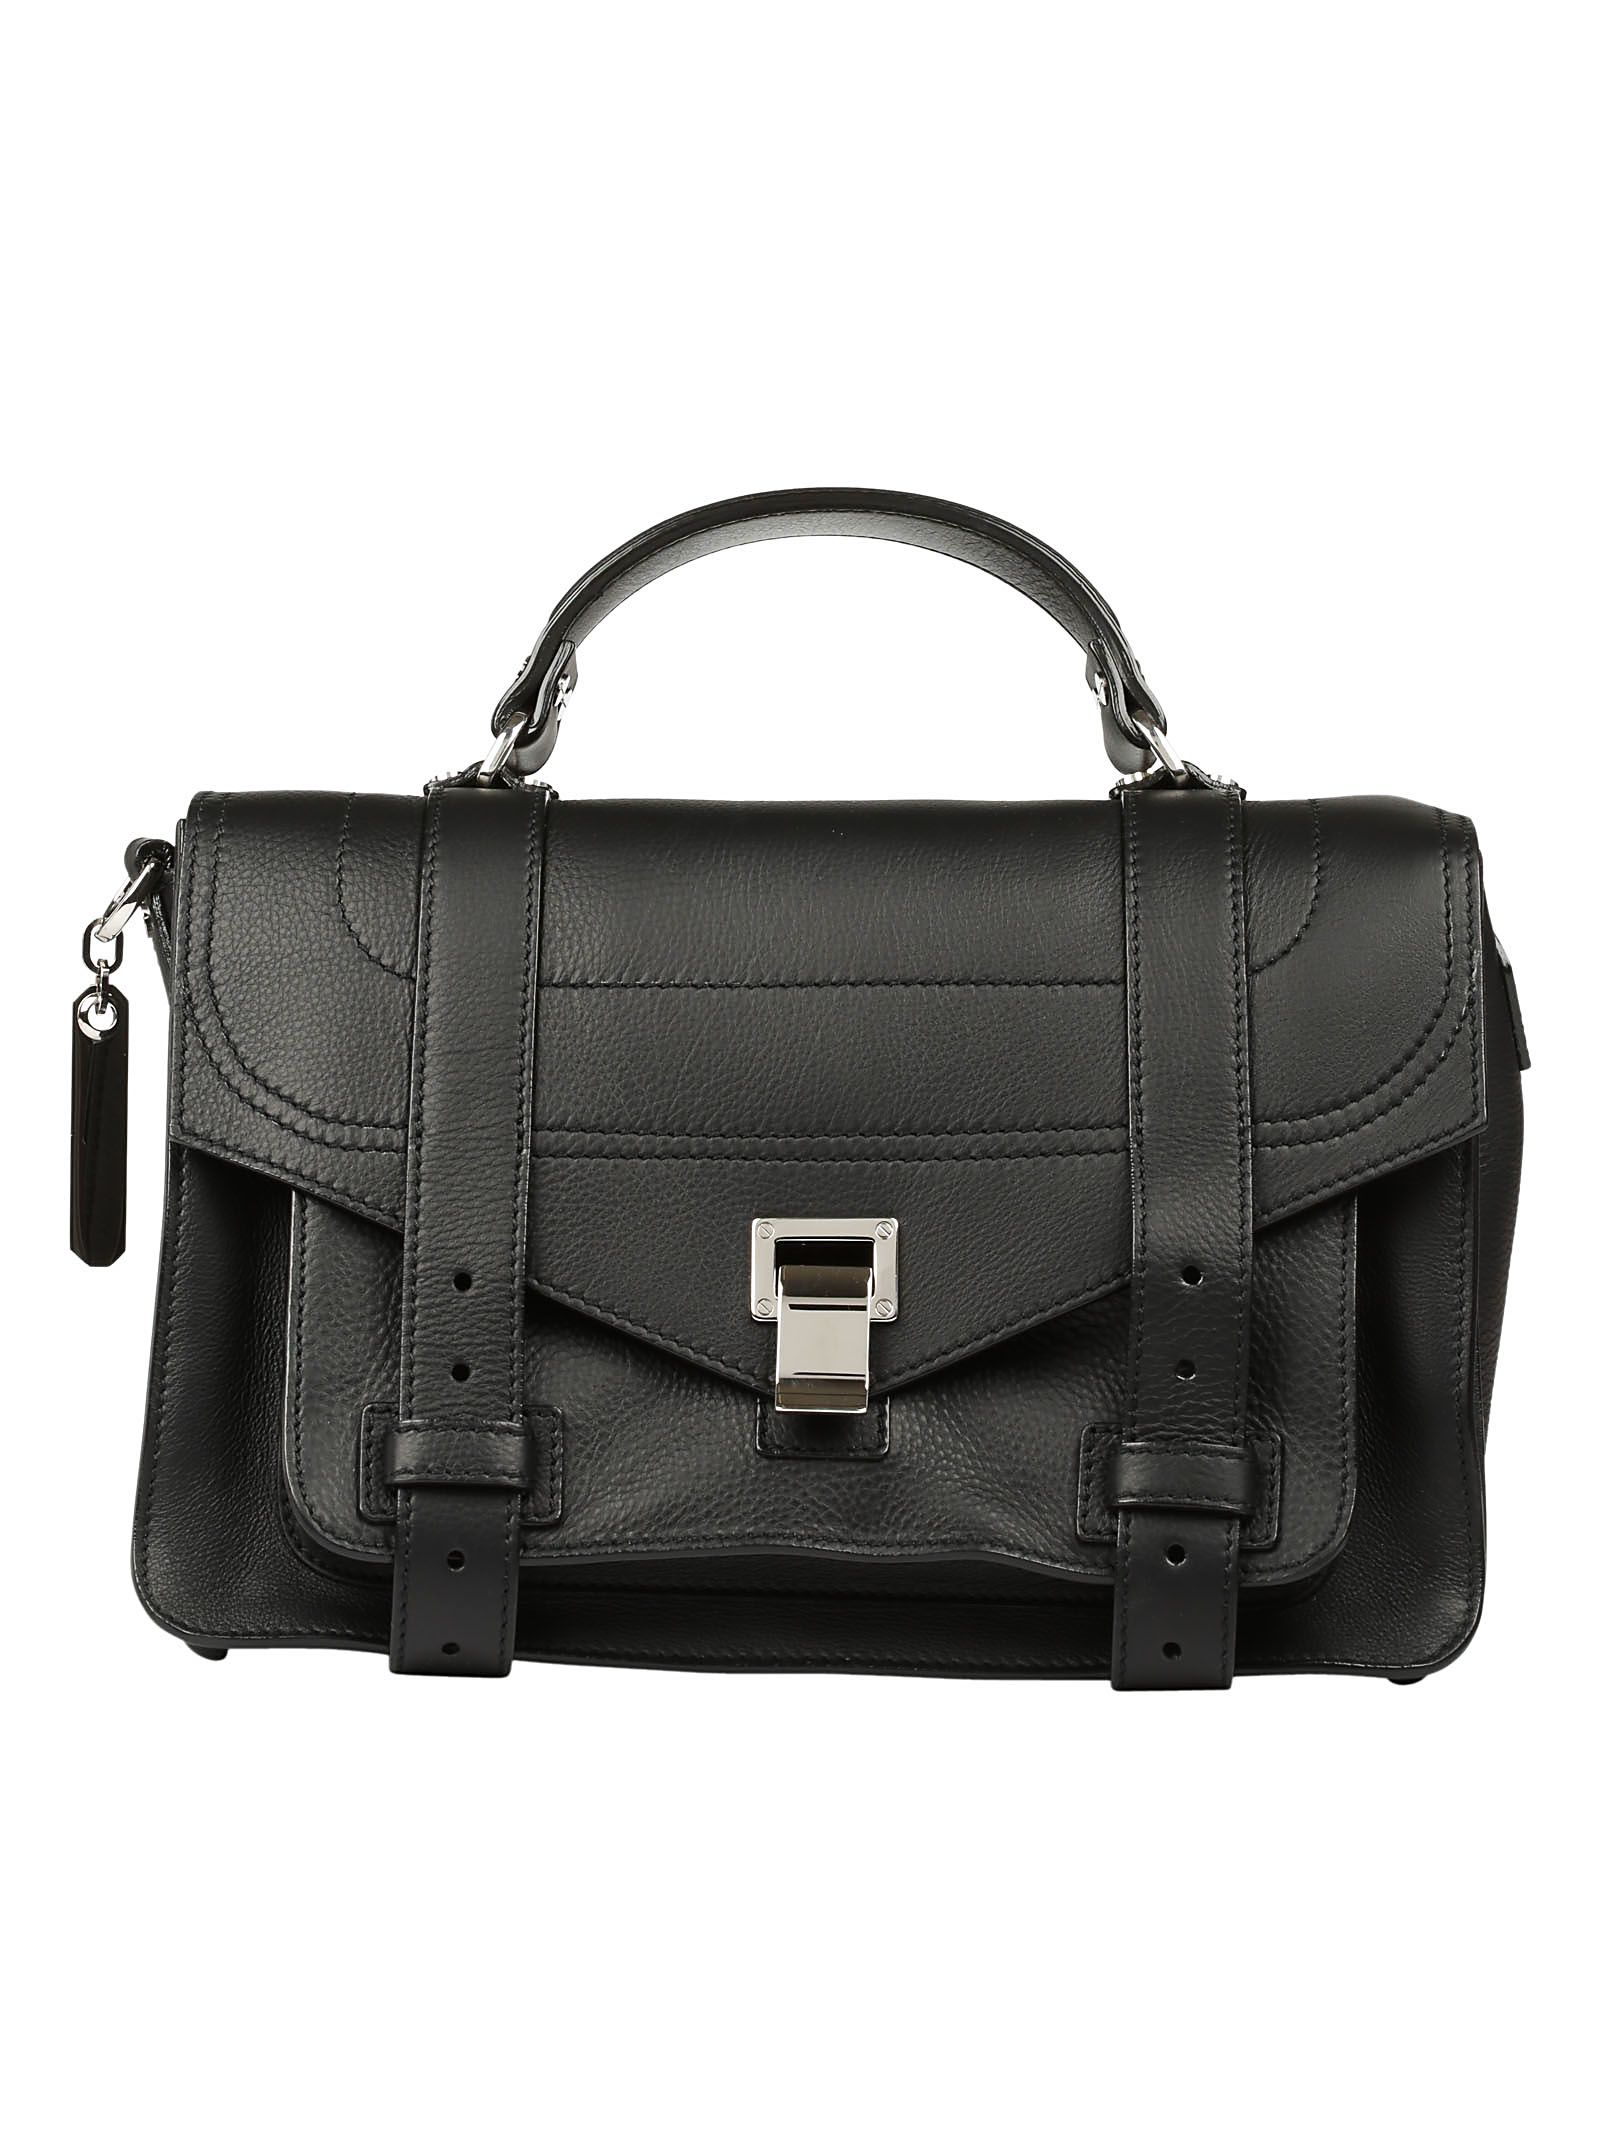 Proenza Schouler Ps1 Plus Handbag